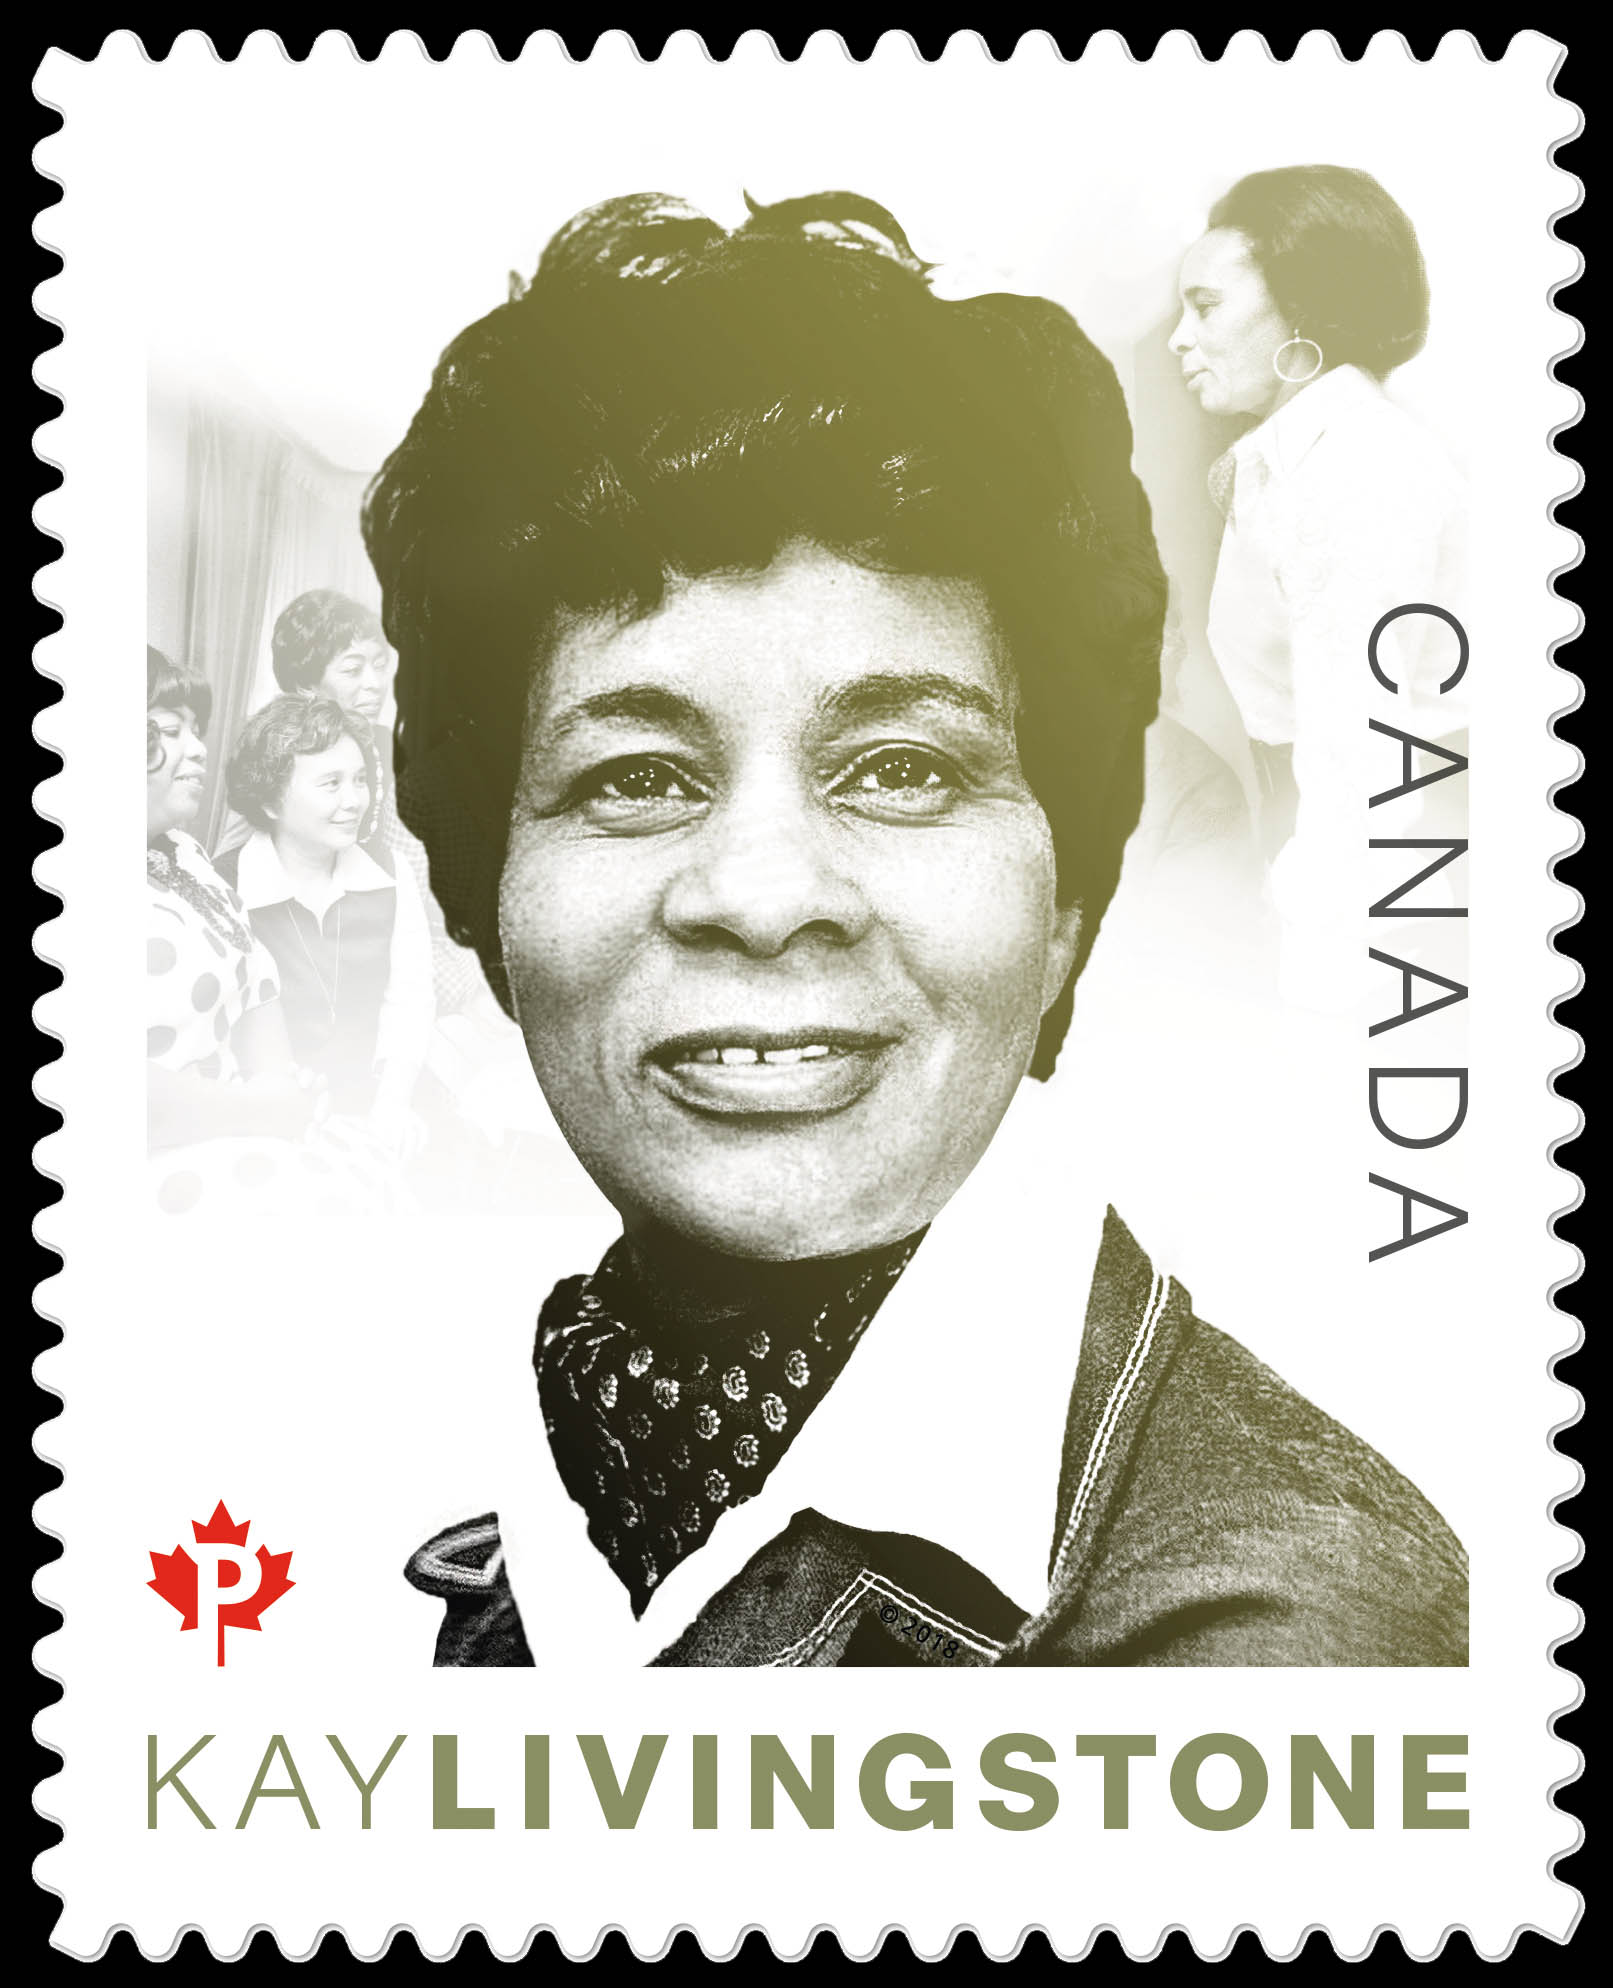 Kathleen (Kay) Livingstone Canada Postage Stamp